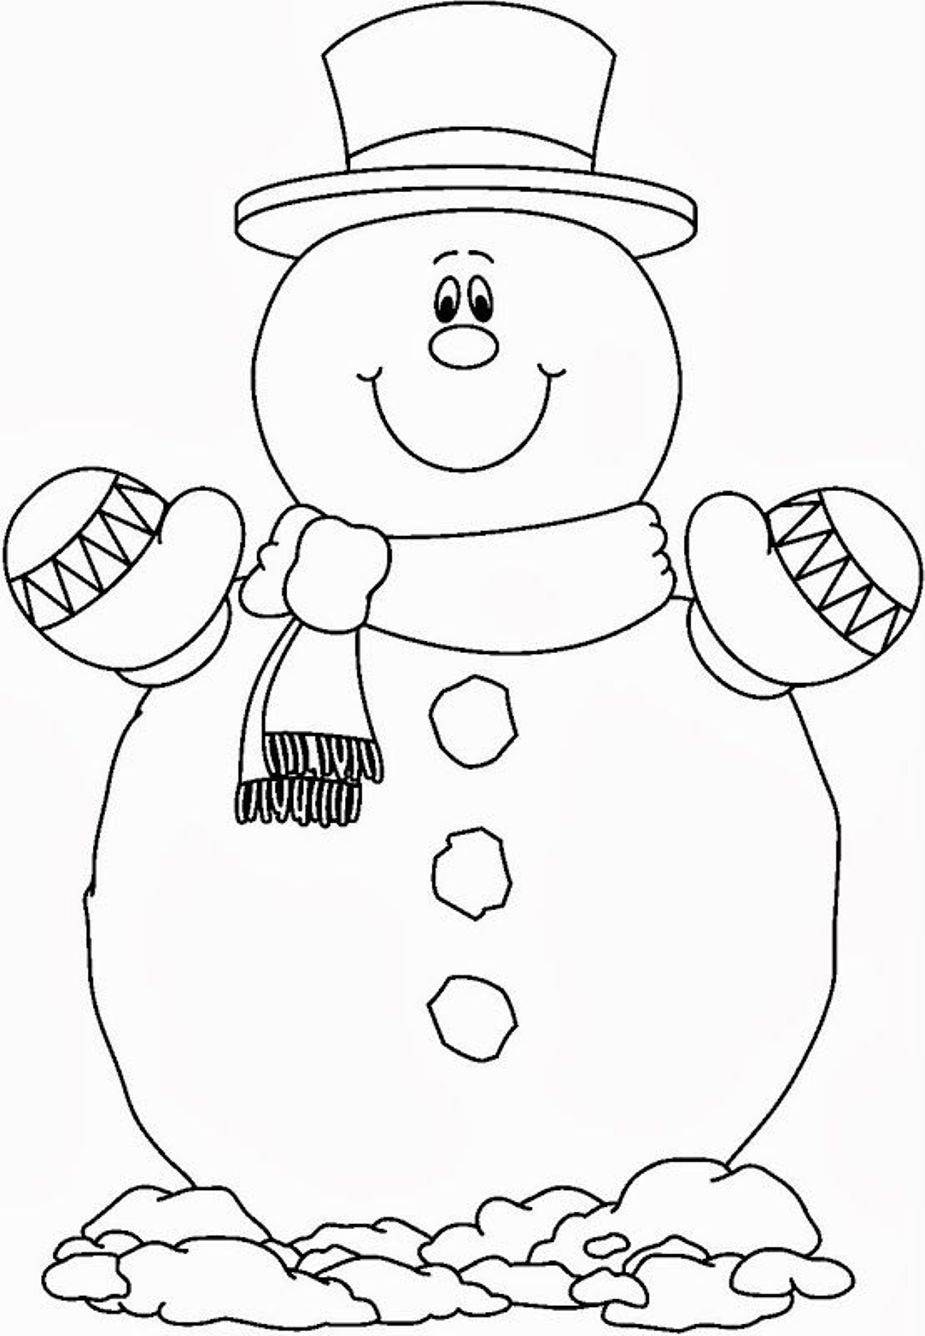 free printable snowman coloring pages free printable snowman coloring pages christmas snowman printable coloring snowman pages free